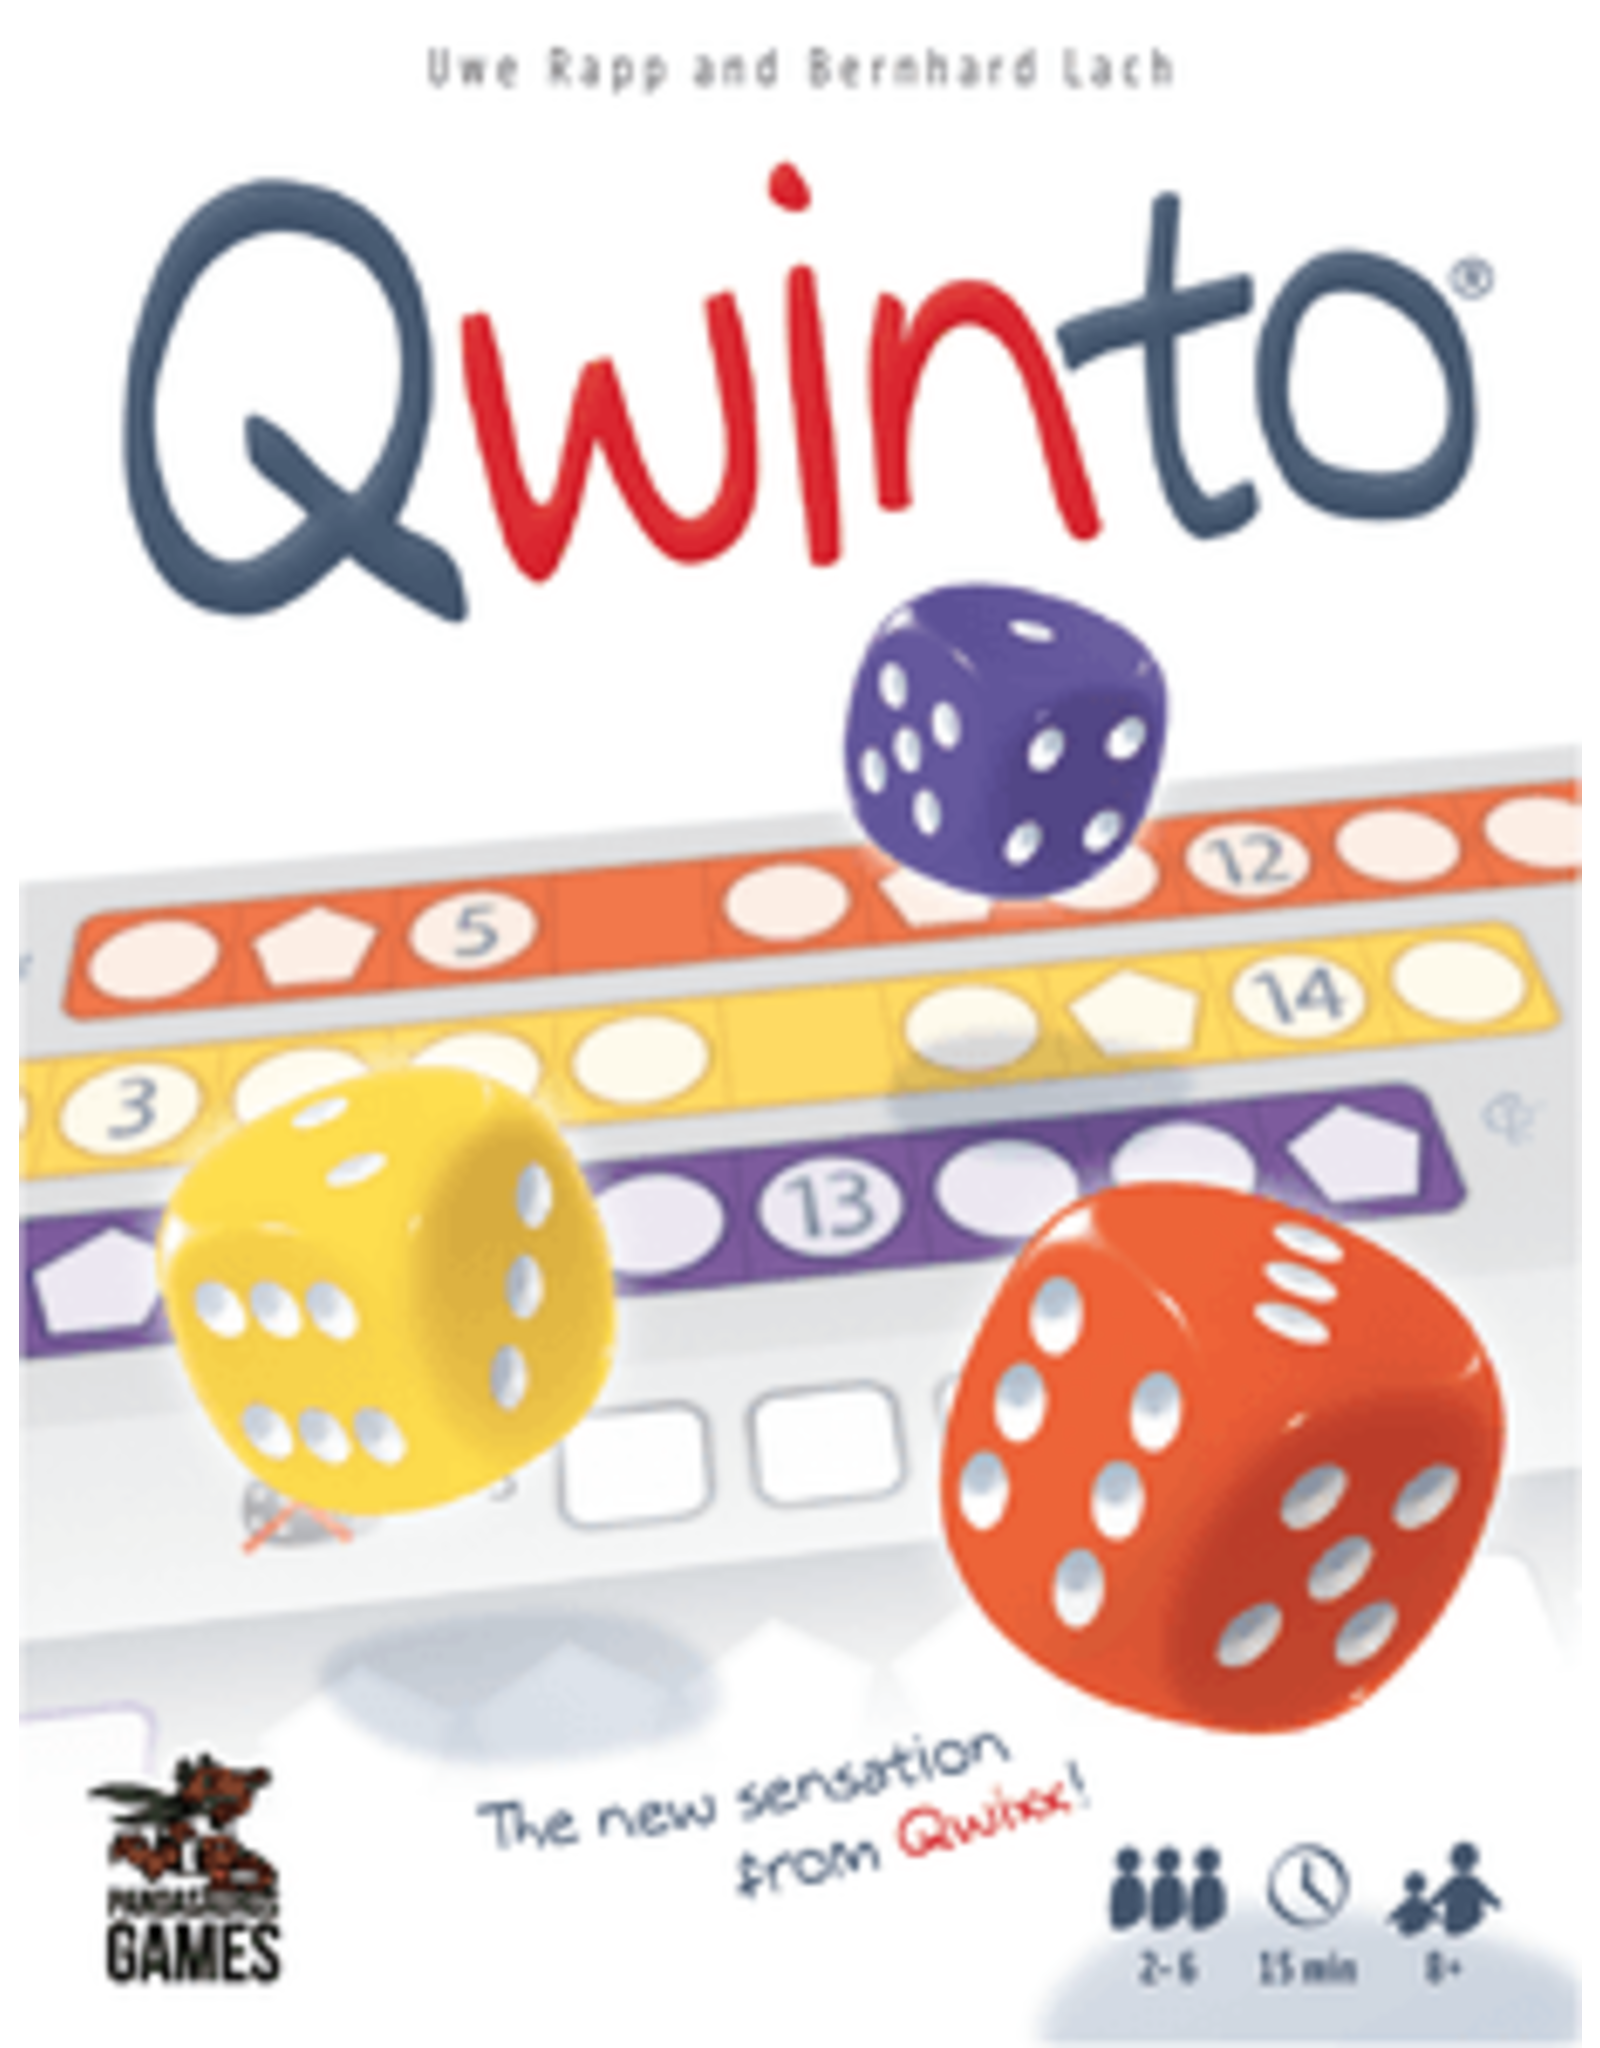 Qwinto Board Game